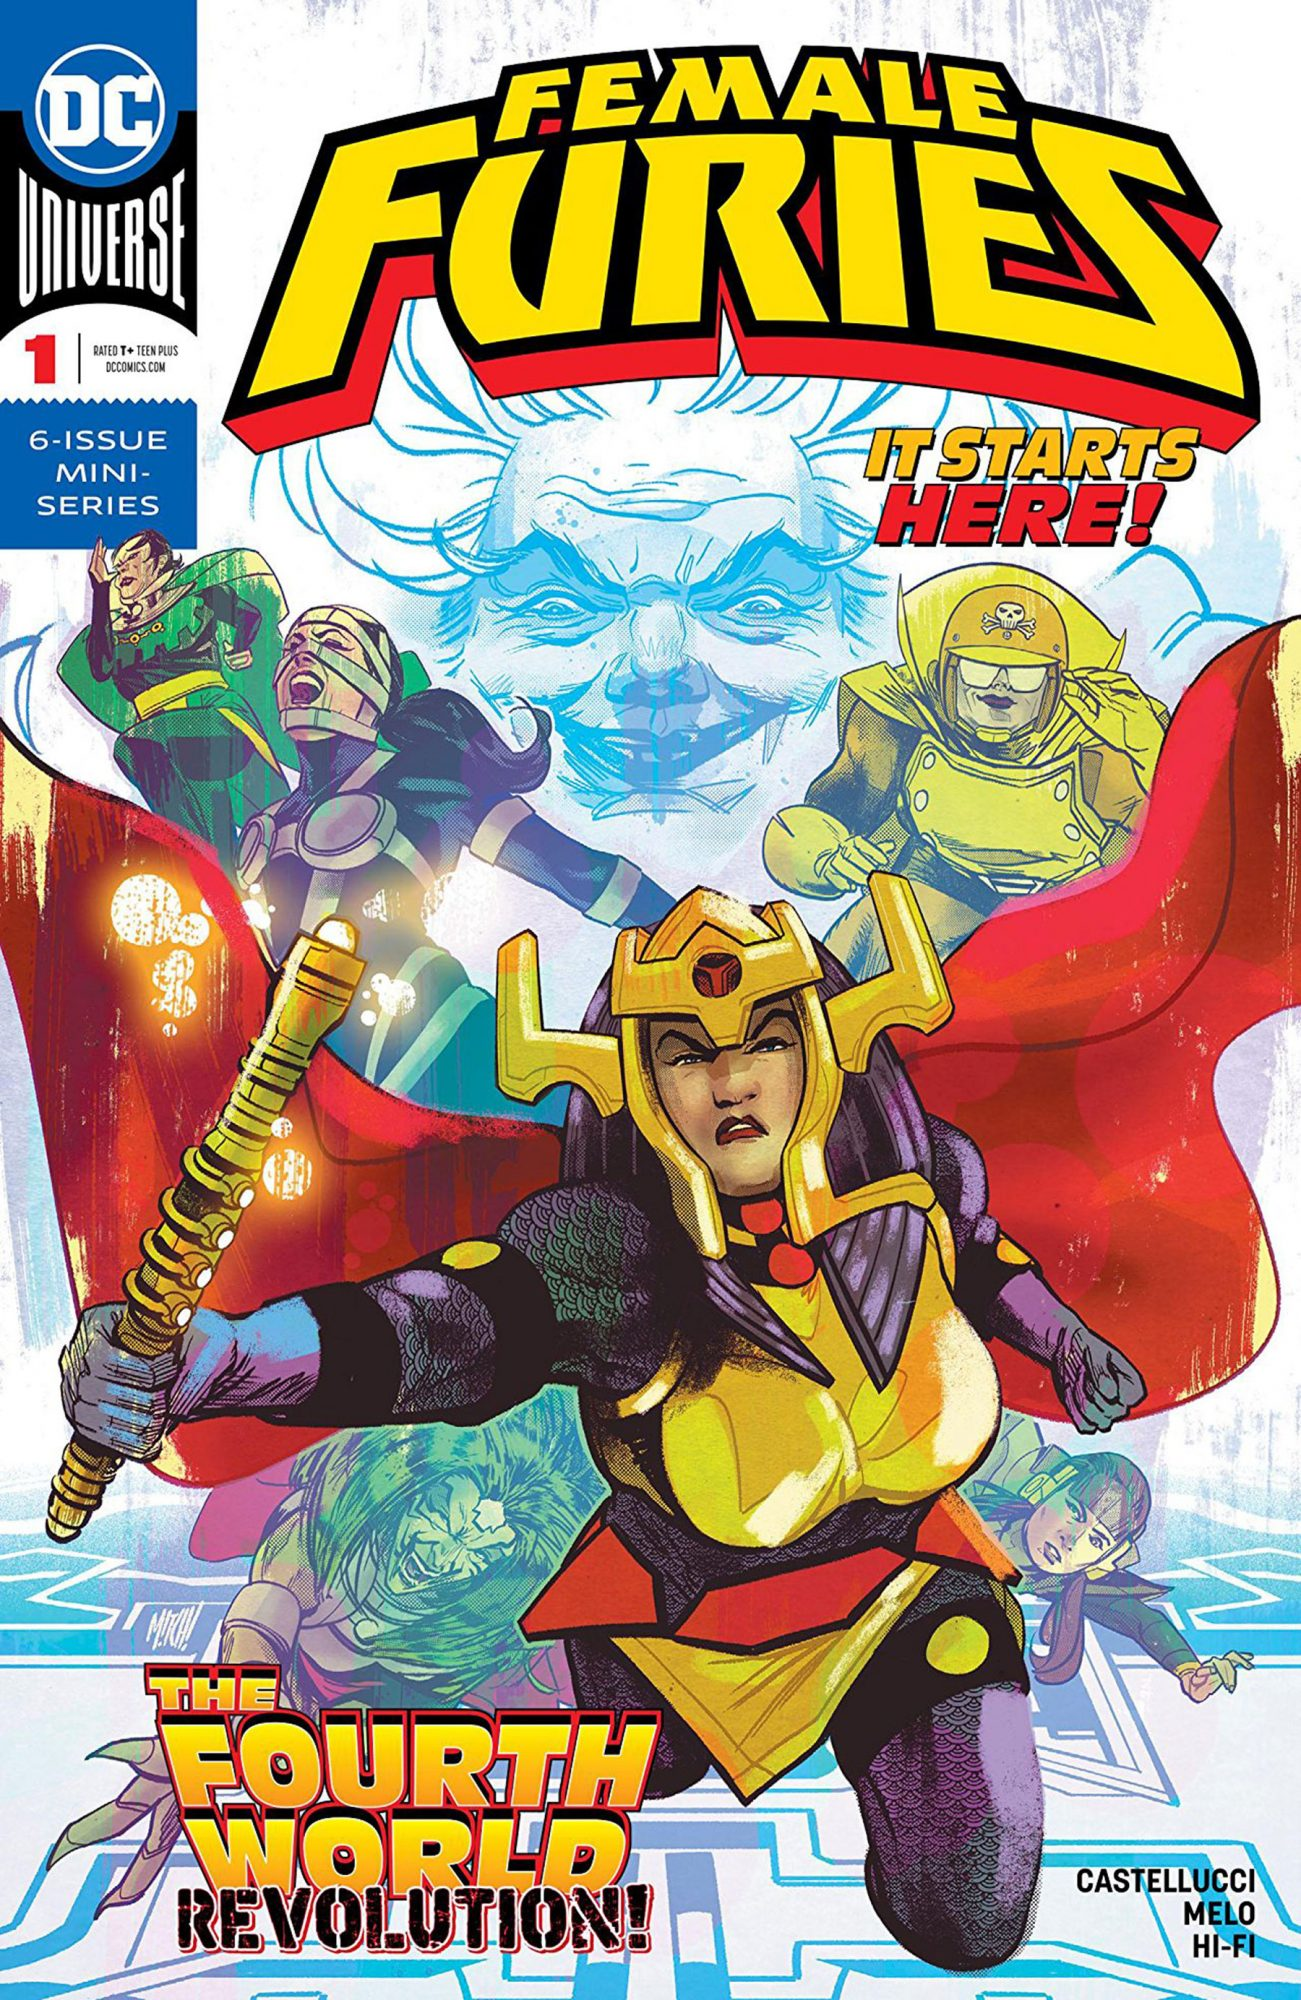 Female Furies (2019-) #1CR: DC Comics